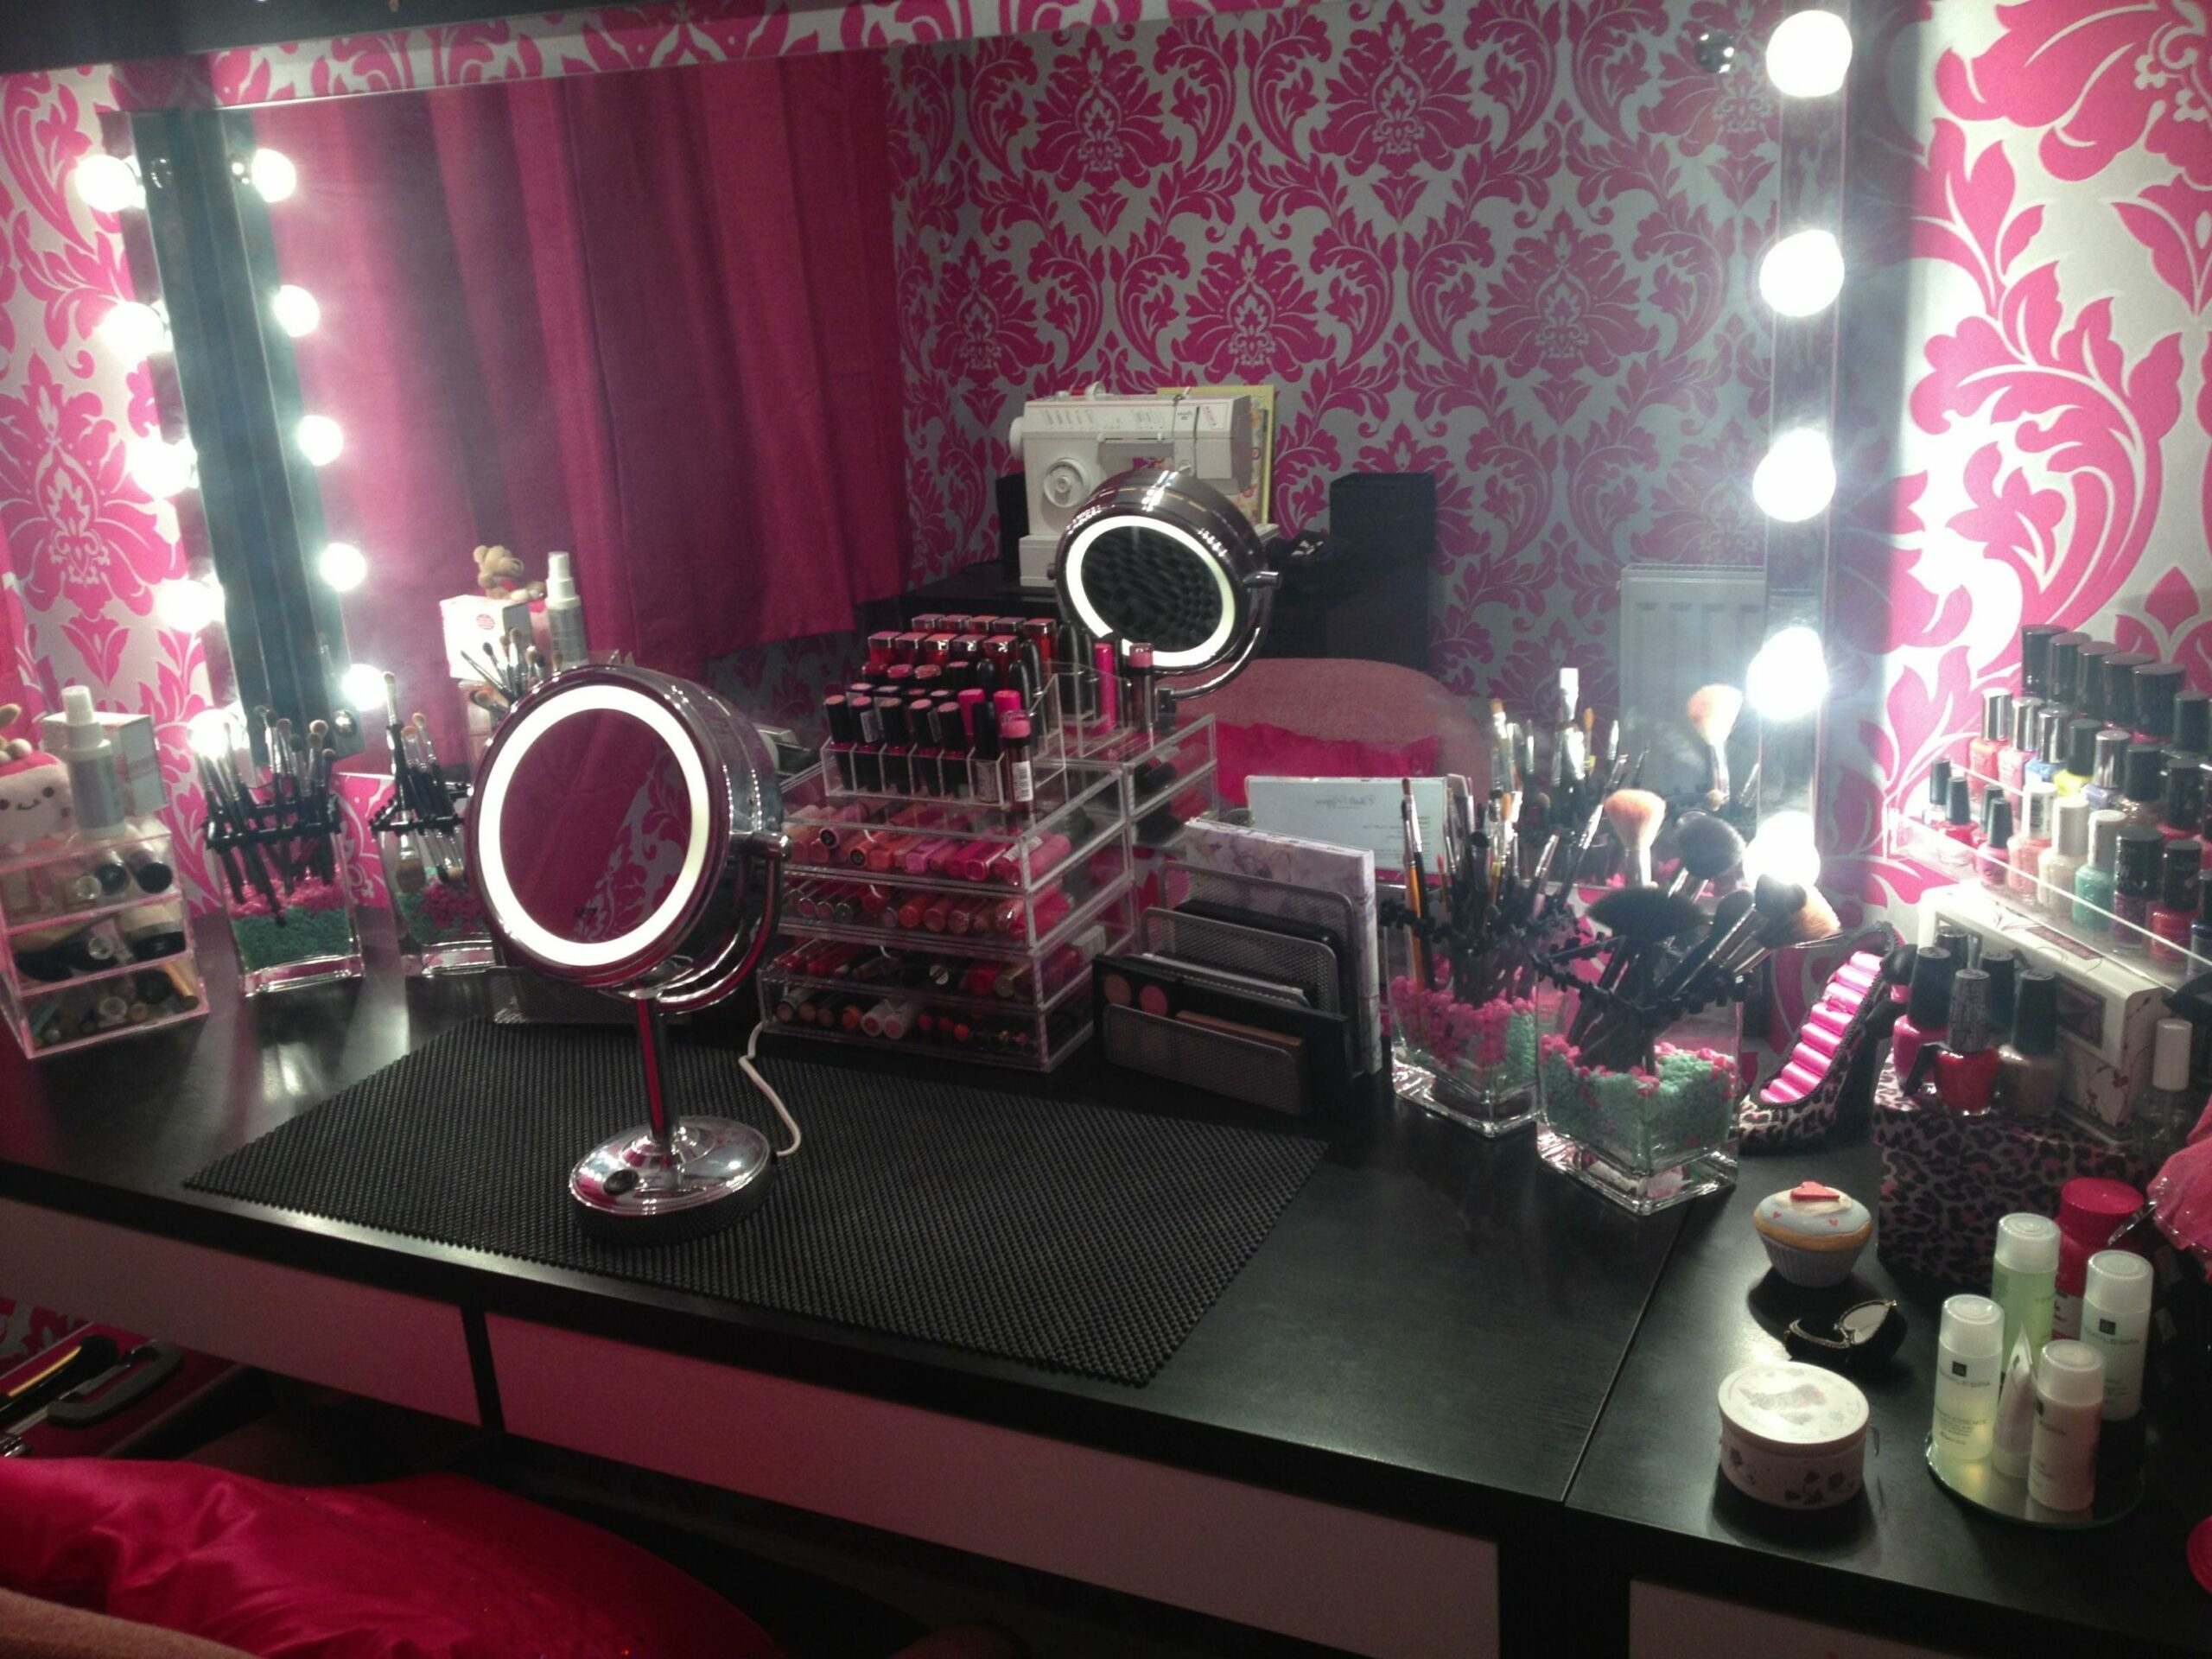 Makeup room, A hollywood vanity style makeup room ..